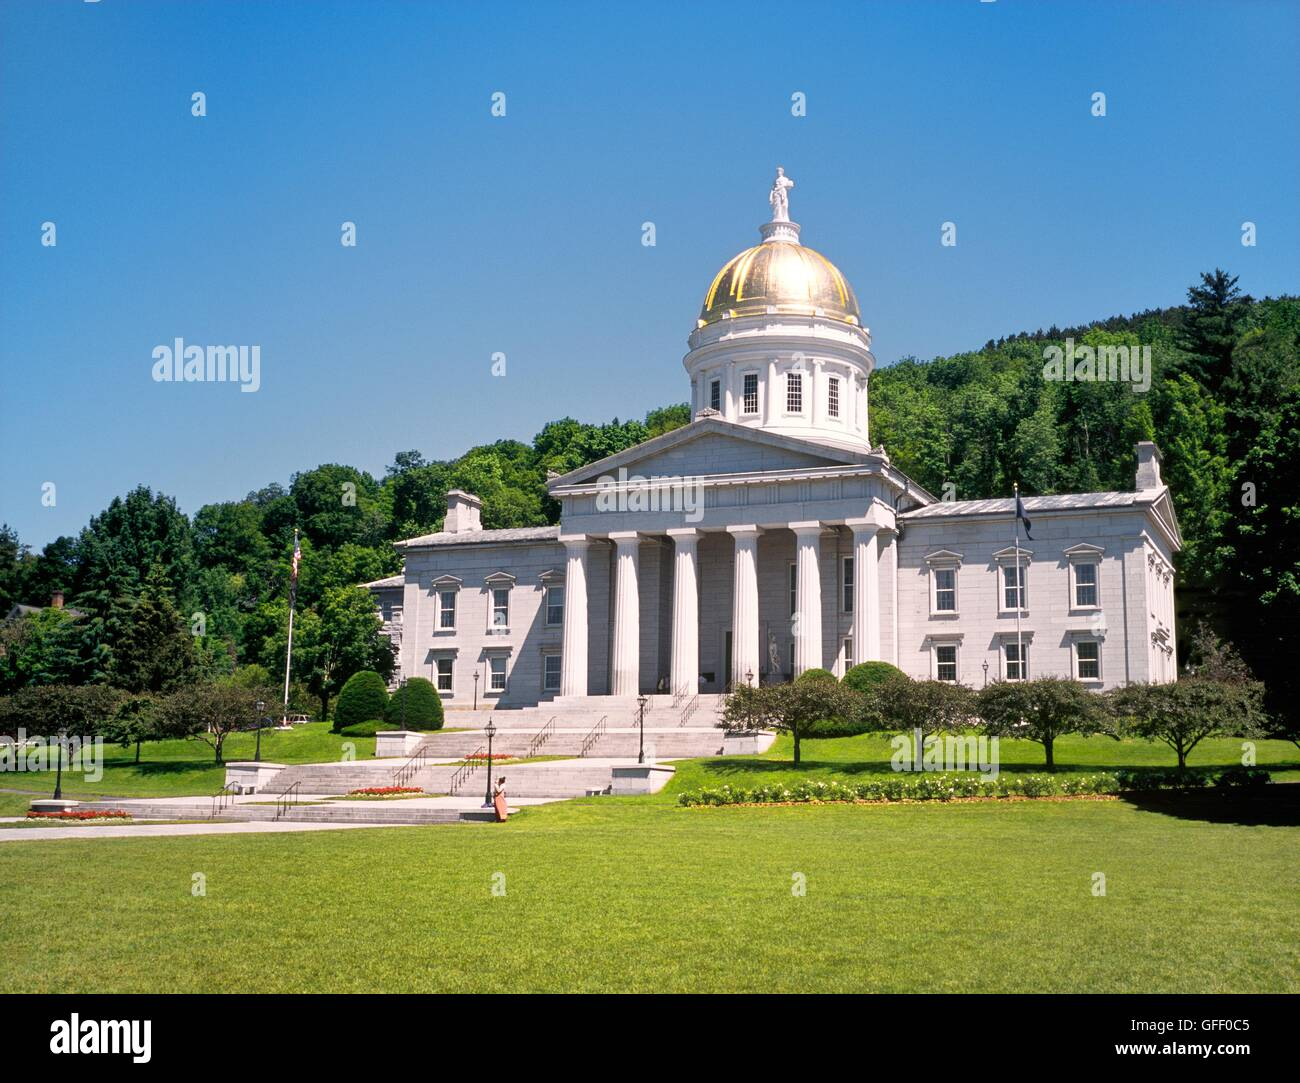 Vermont State House in city of Montpelier, state capital of ... on capitals of pacific northwest states, capitals of northeast states, capitals of western states, capitals of southern states, capitals of midwestern states, capitals of the west states, capitals of southwest states, capitals of midwest states, capitals of mid atlantic states,